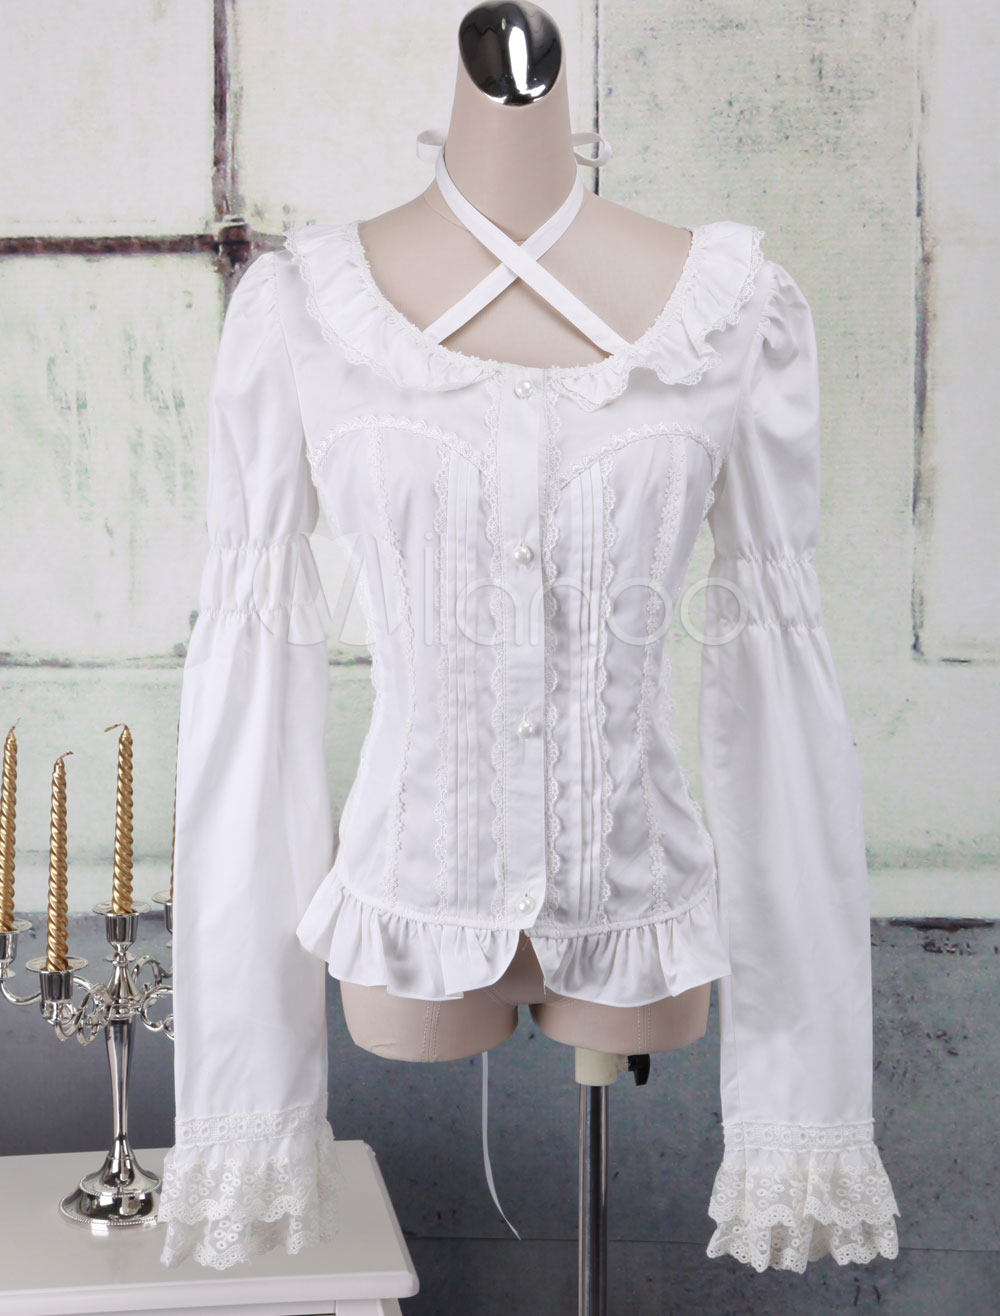 Buy White Cotton Lolita Blouse Long Sleeves Lace Trim Neck Straps Round Collar for $53.99 in Milanoo store